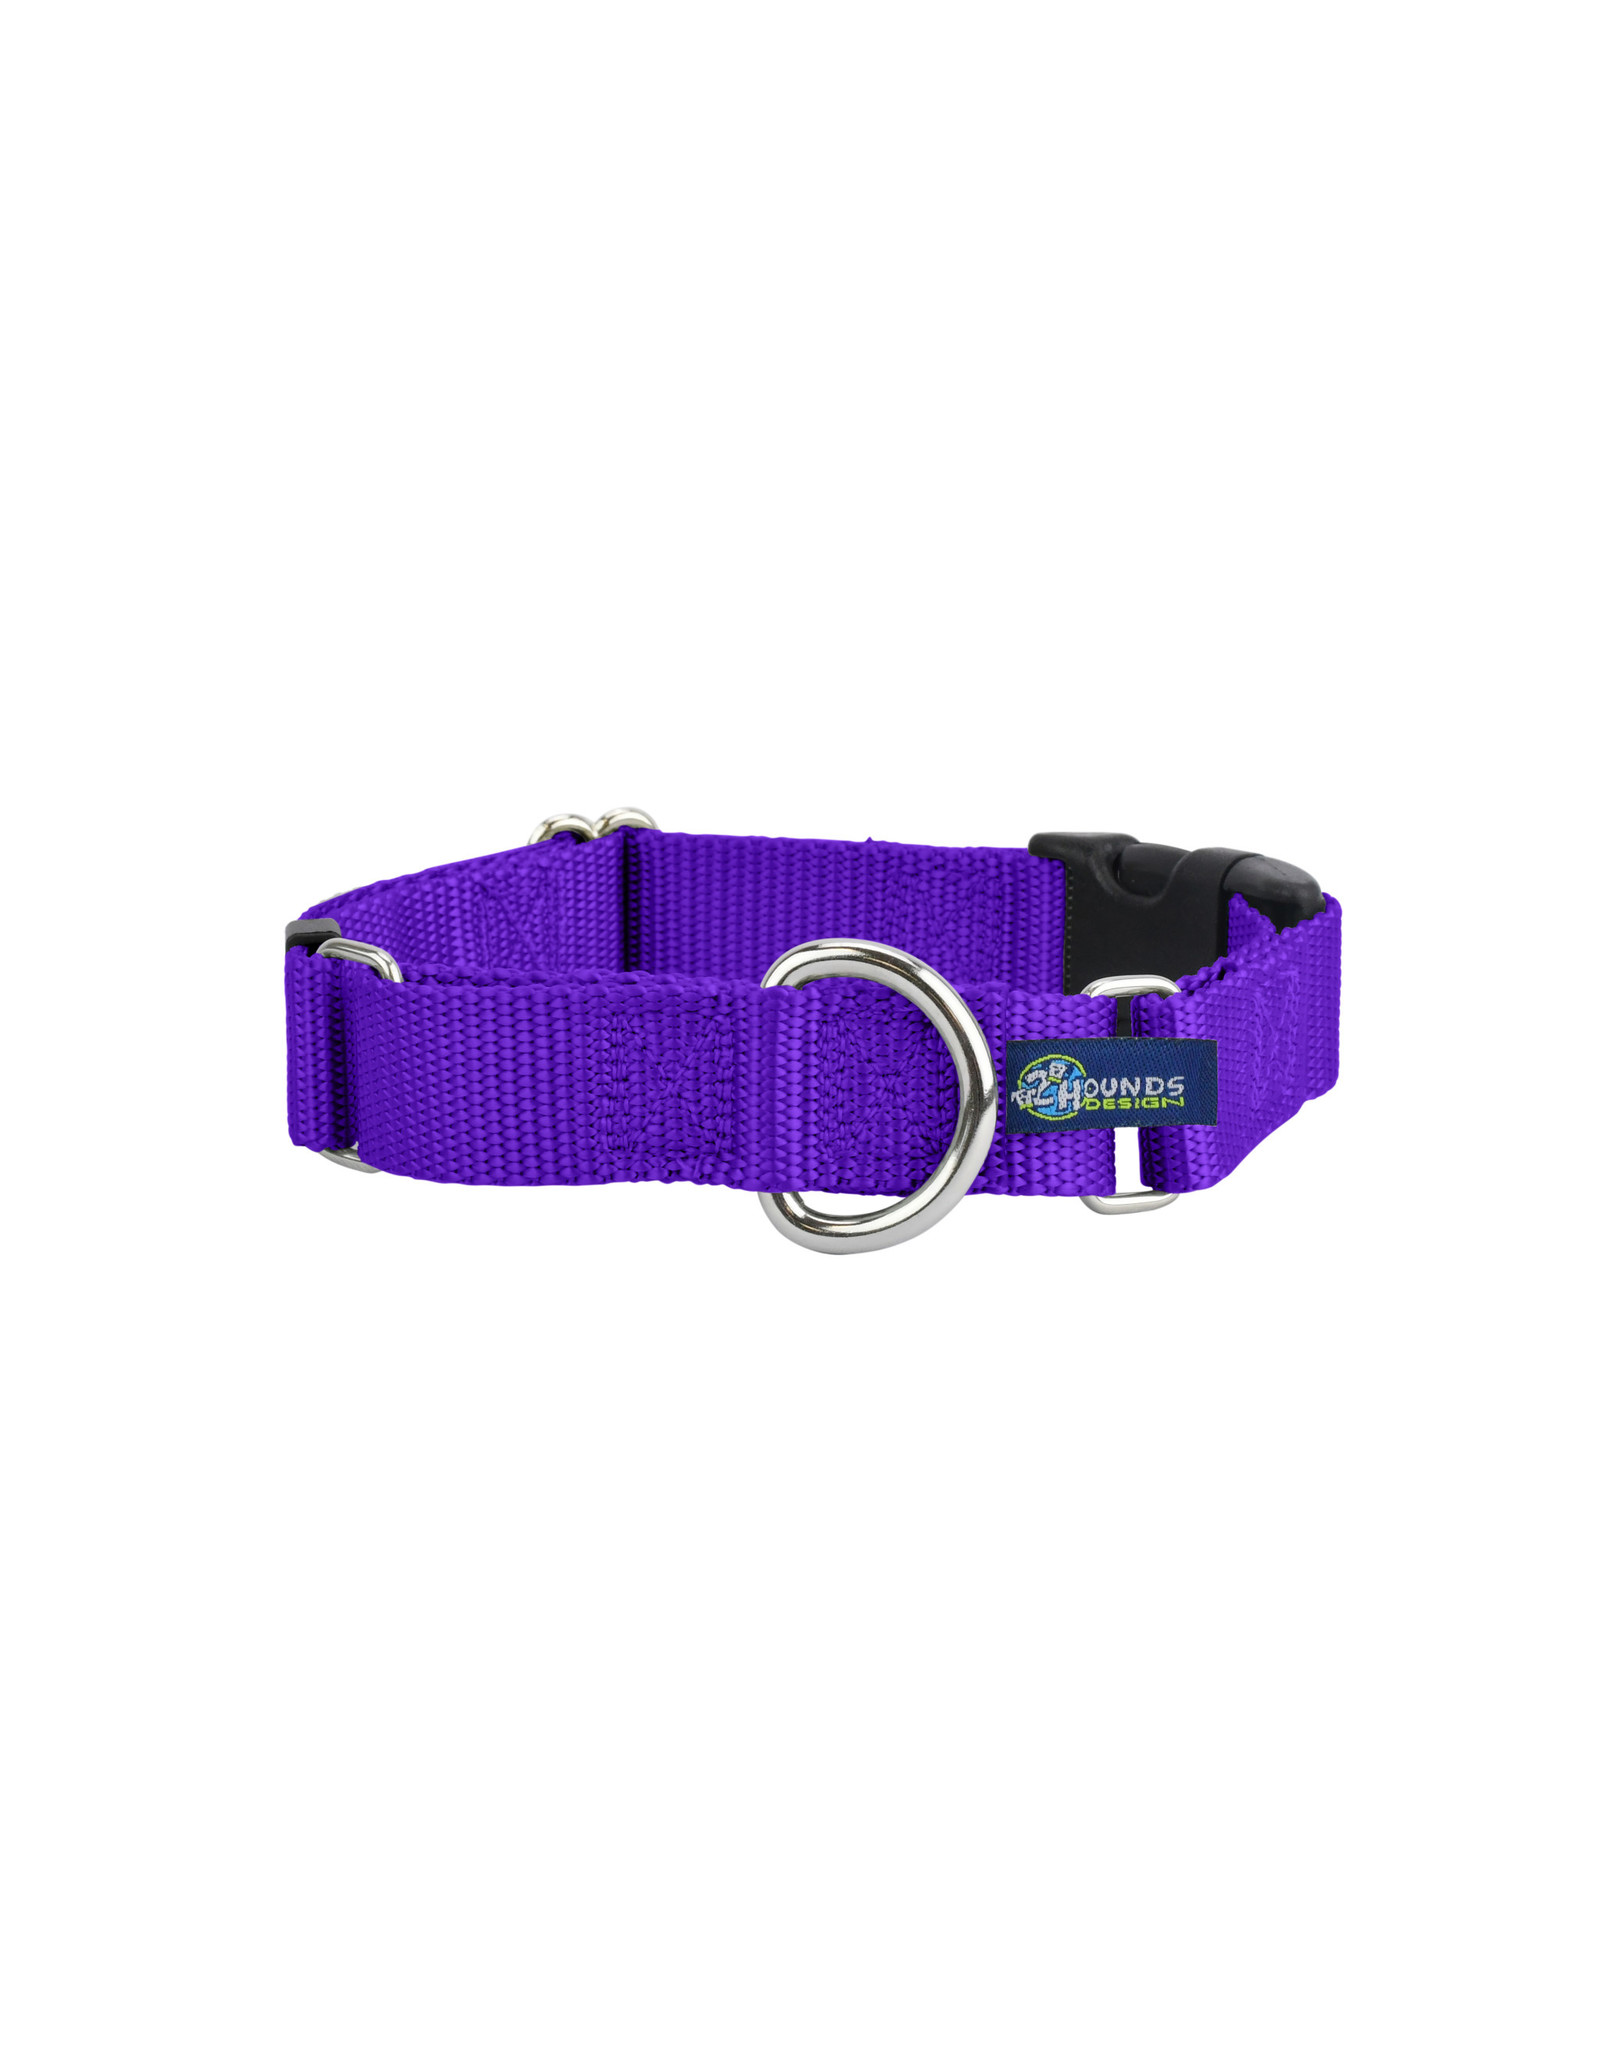 "2 Hounds Design Martingale w/ buckle: Purple, 1.5"" XL"